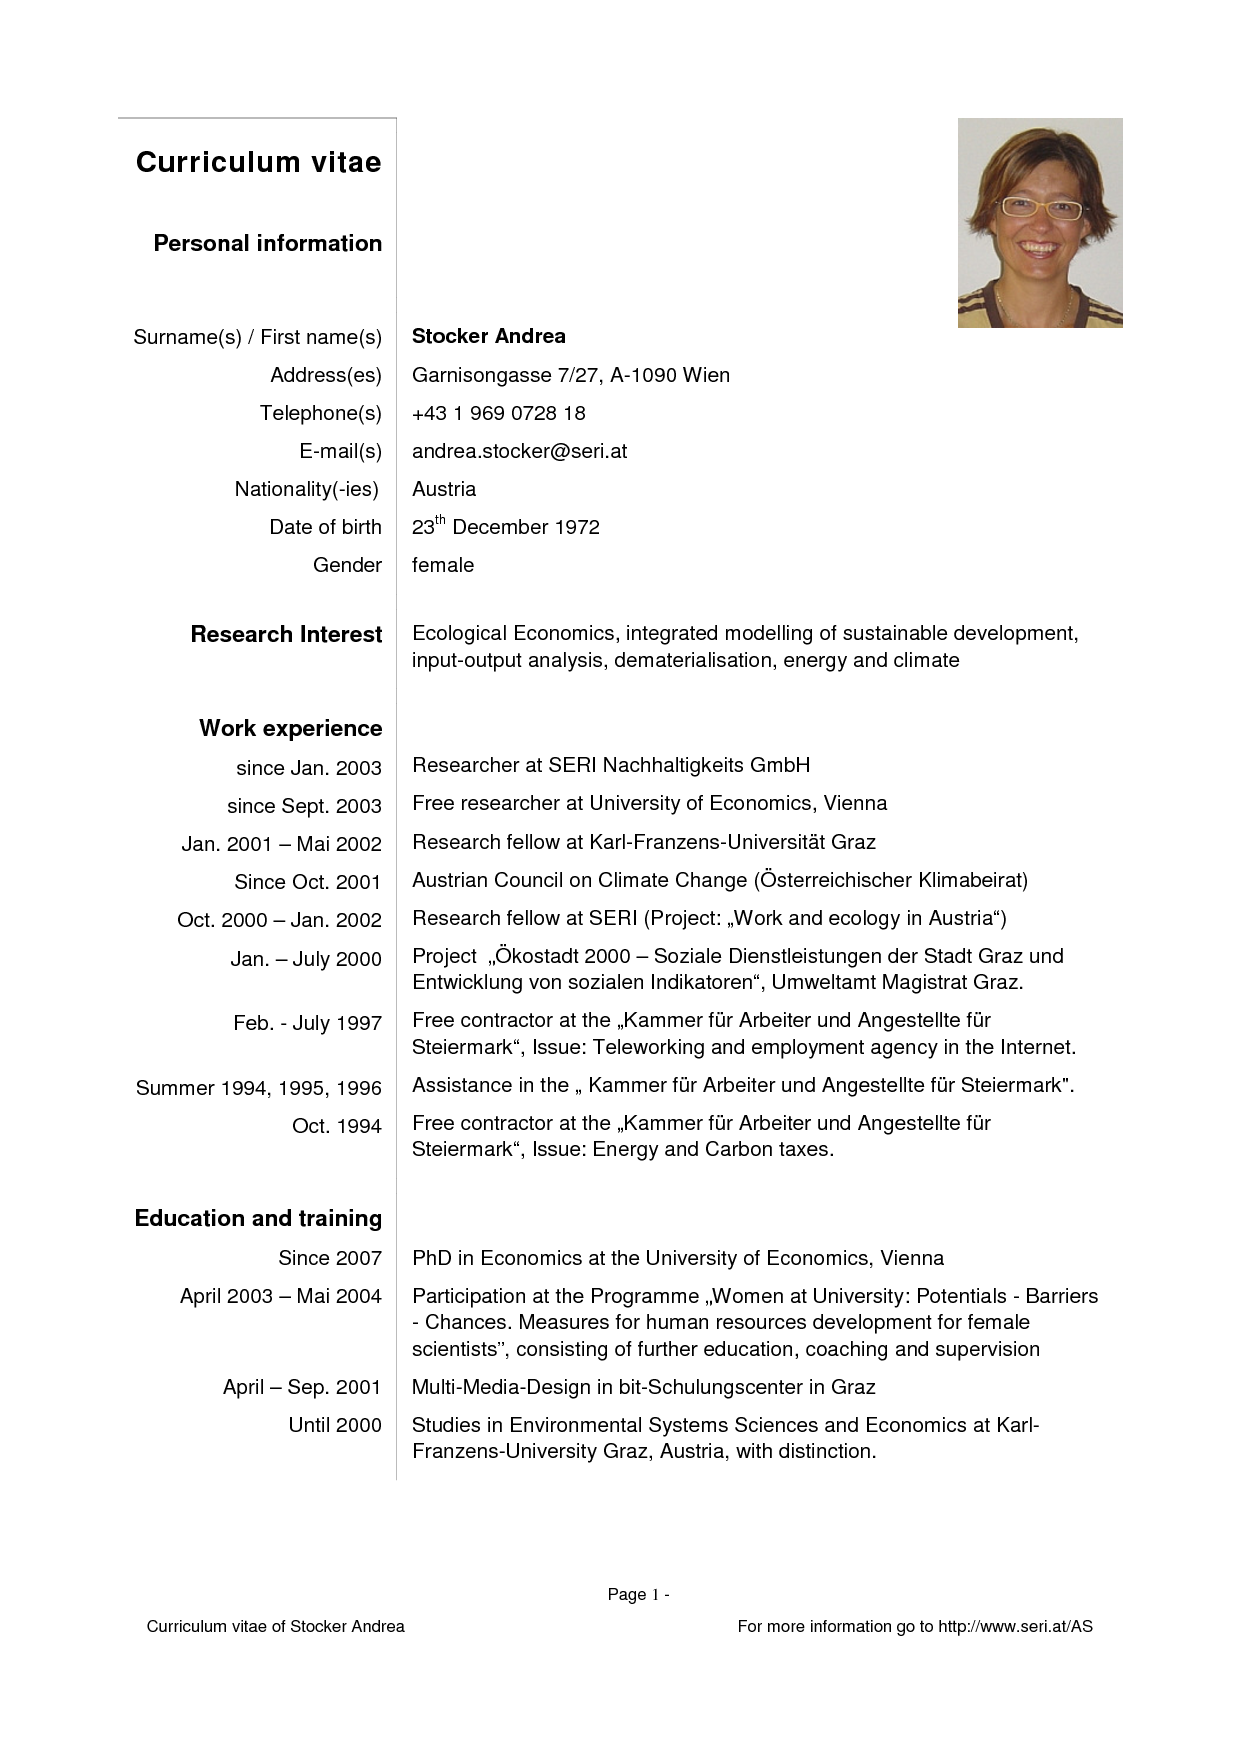 Template For Curriculum Vitae Curriculumvitaesamplespdftemplate2016Pcfbcrlg 1240×1754